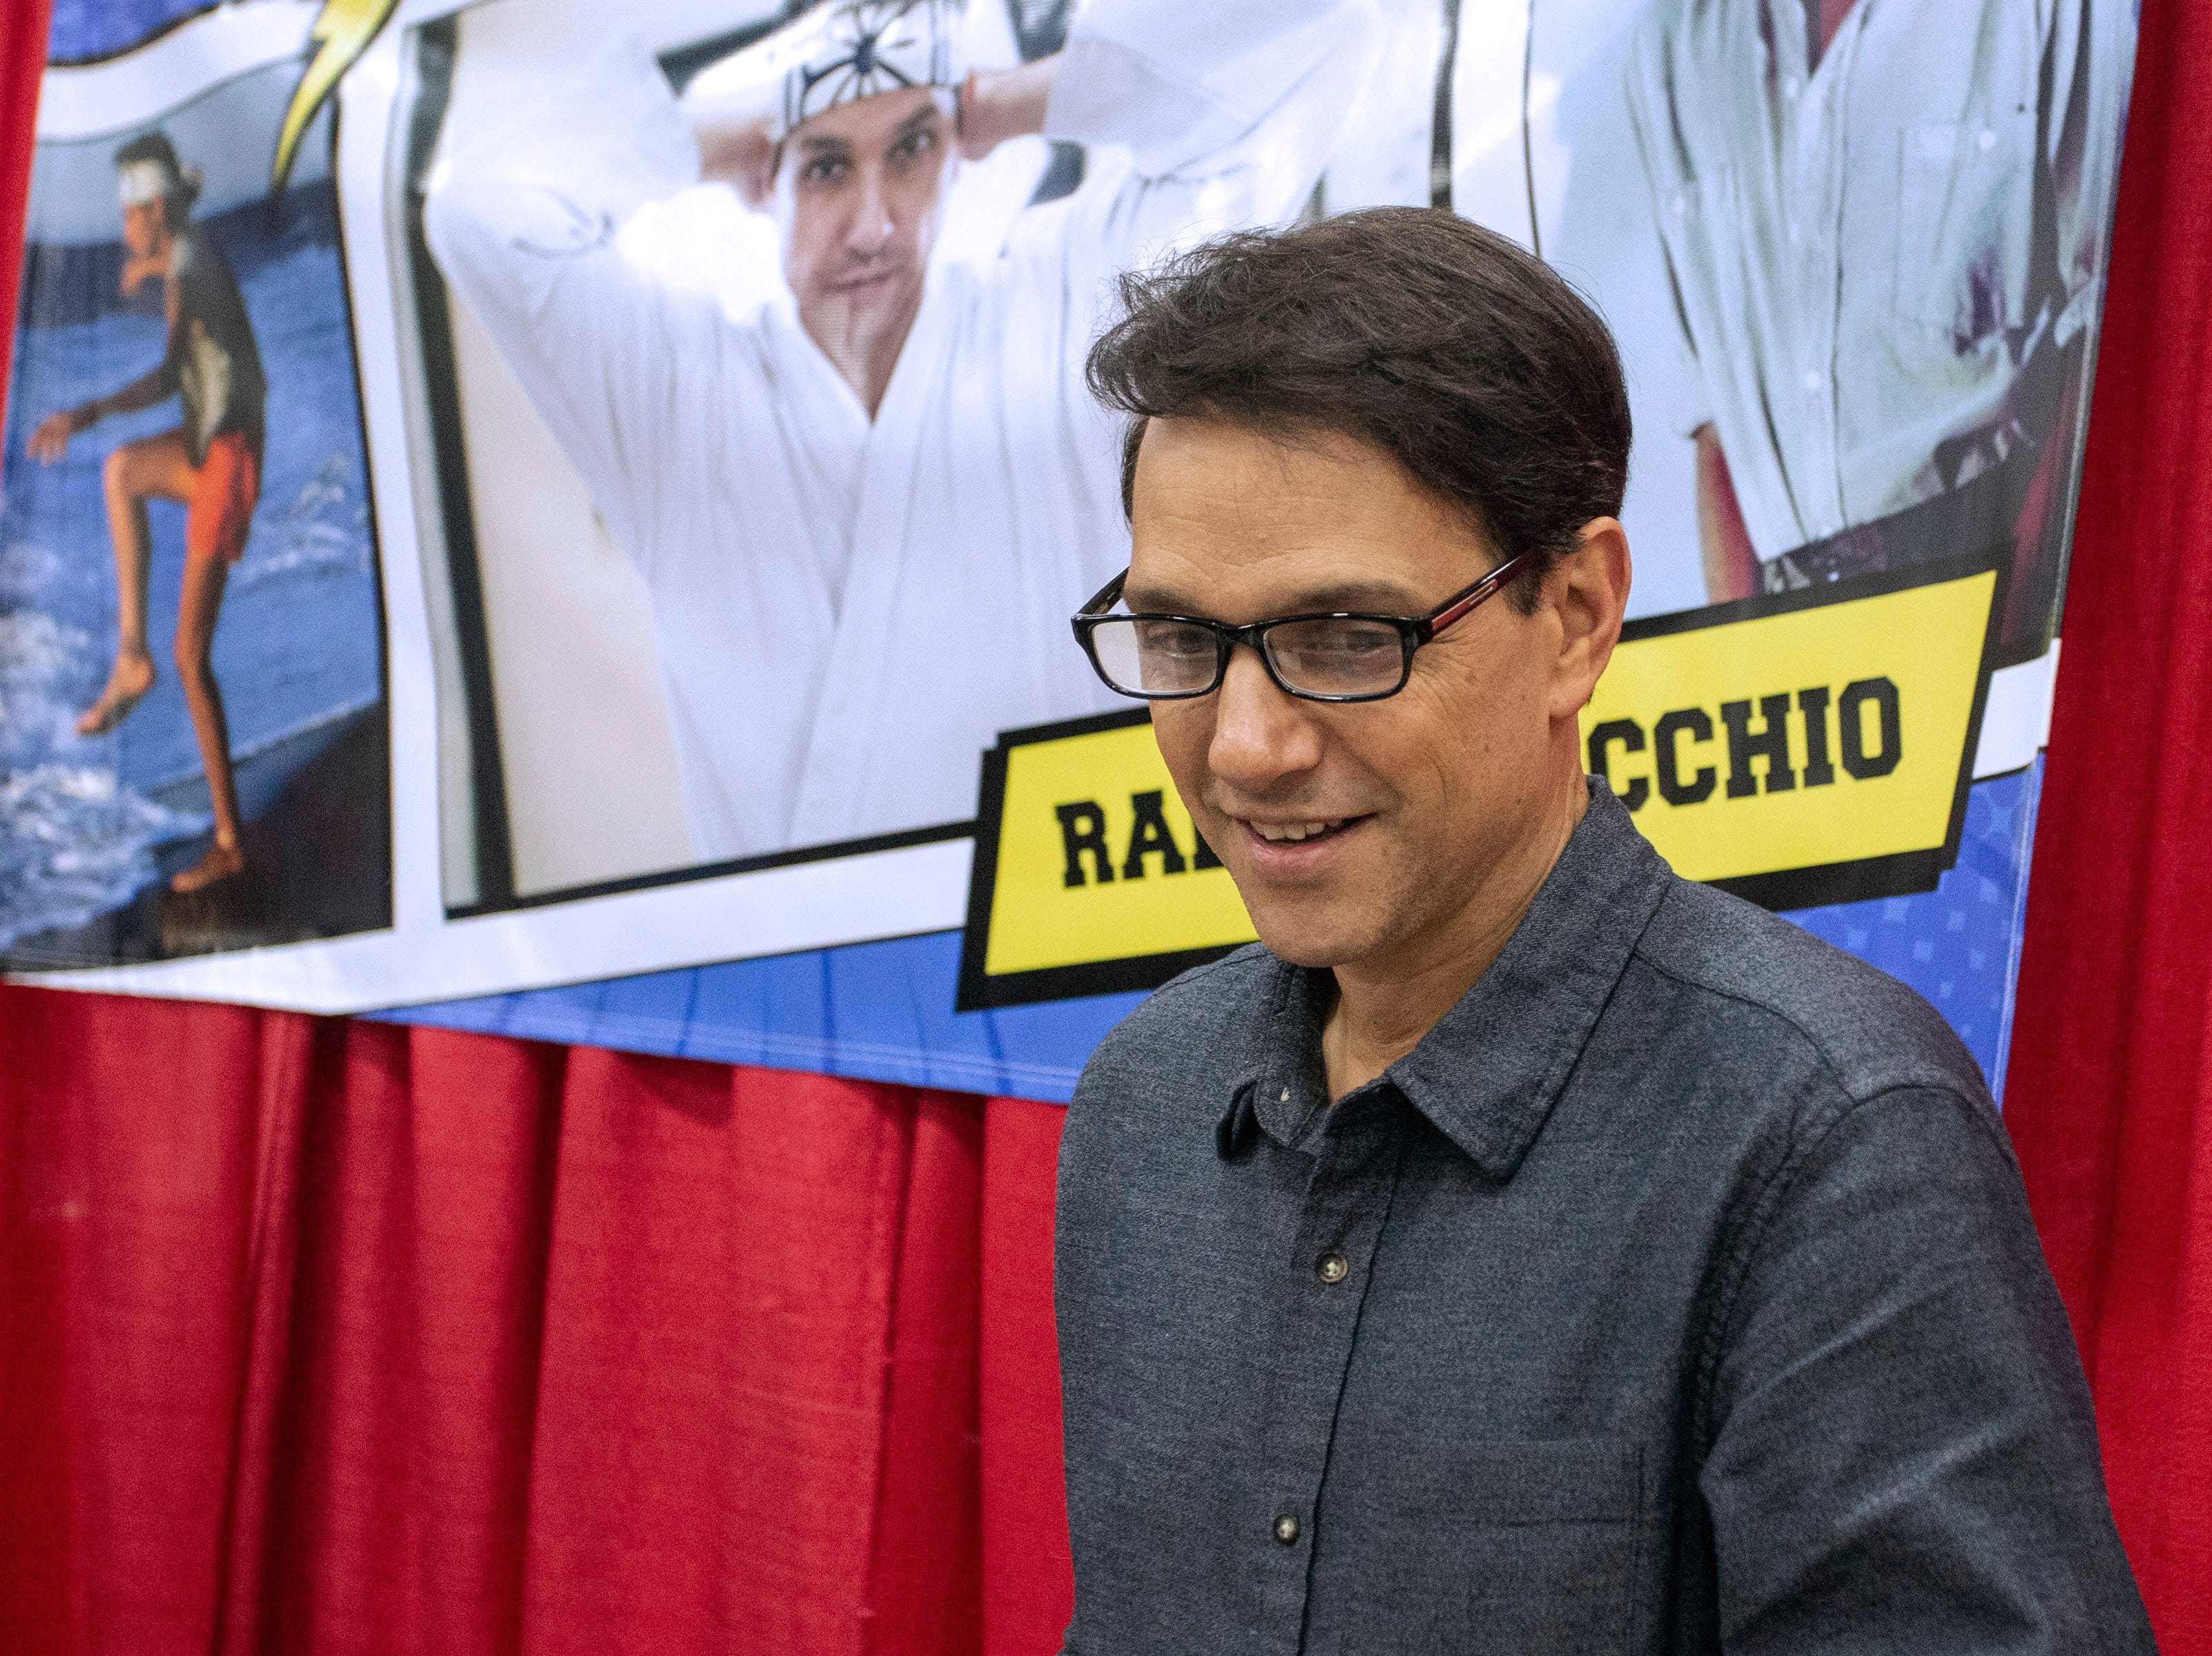 Ralph Macchio (The Karate Kid, The Outsiders, The Deuce) interacted with fans on Saturday at the Louisville SuperCon. 12/1/18